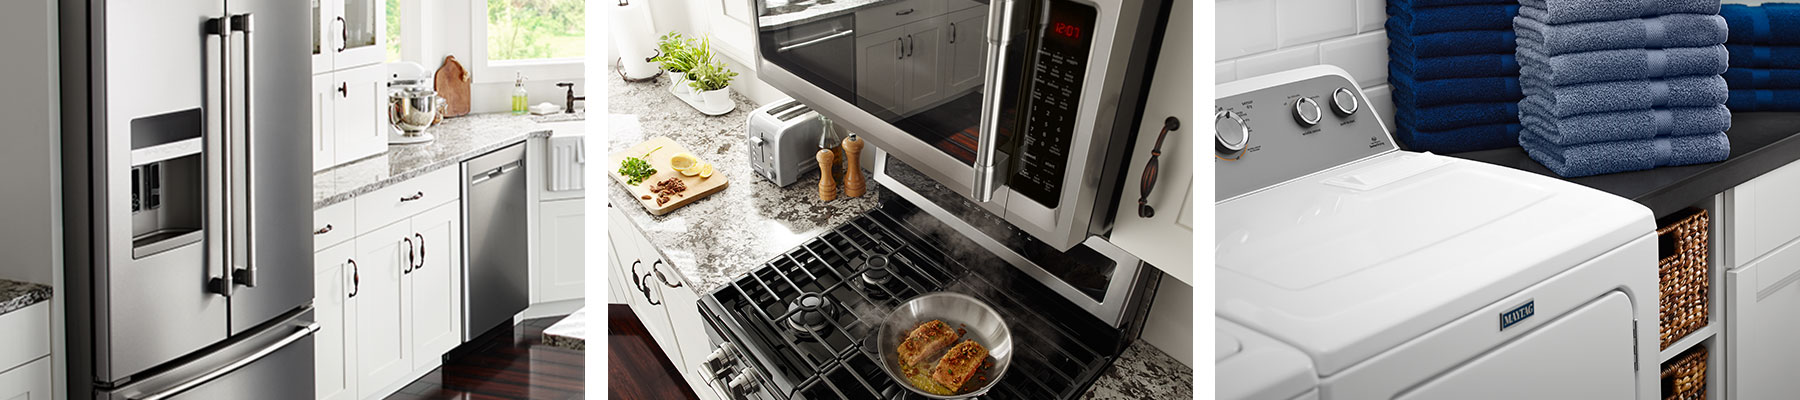 Dependable Maytag Home Appliance Center - Services - Home Appliance ...